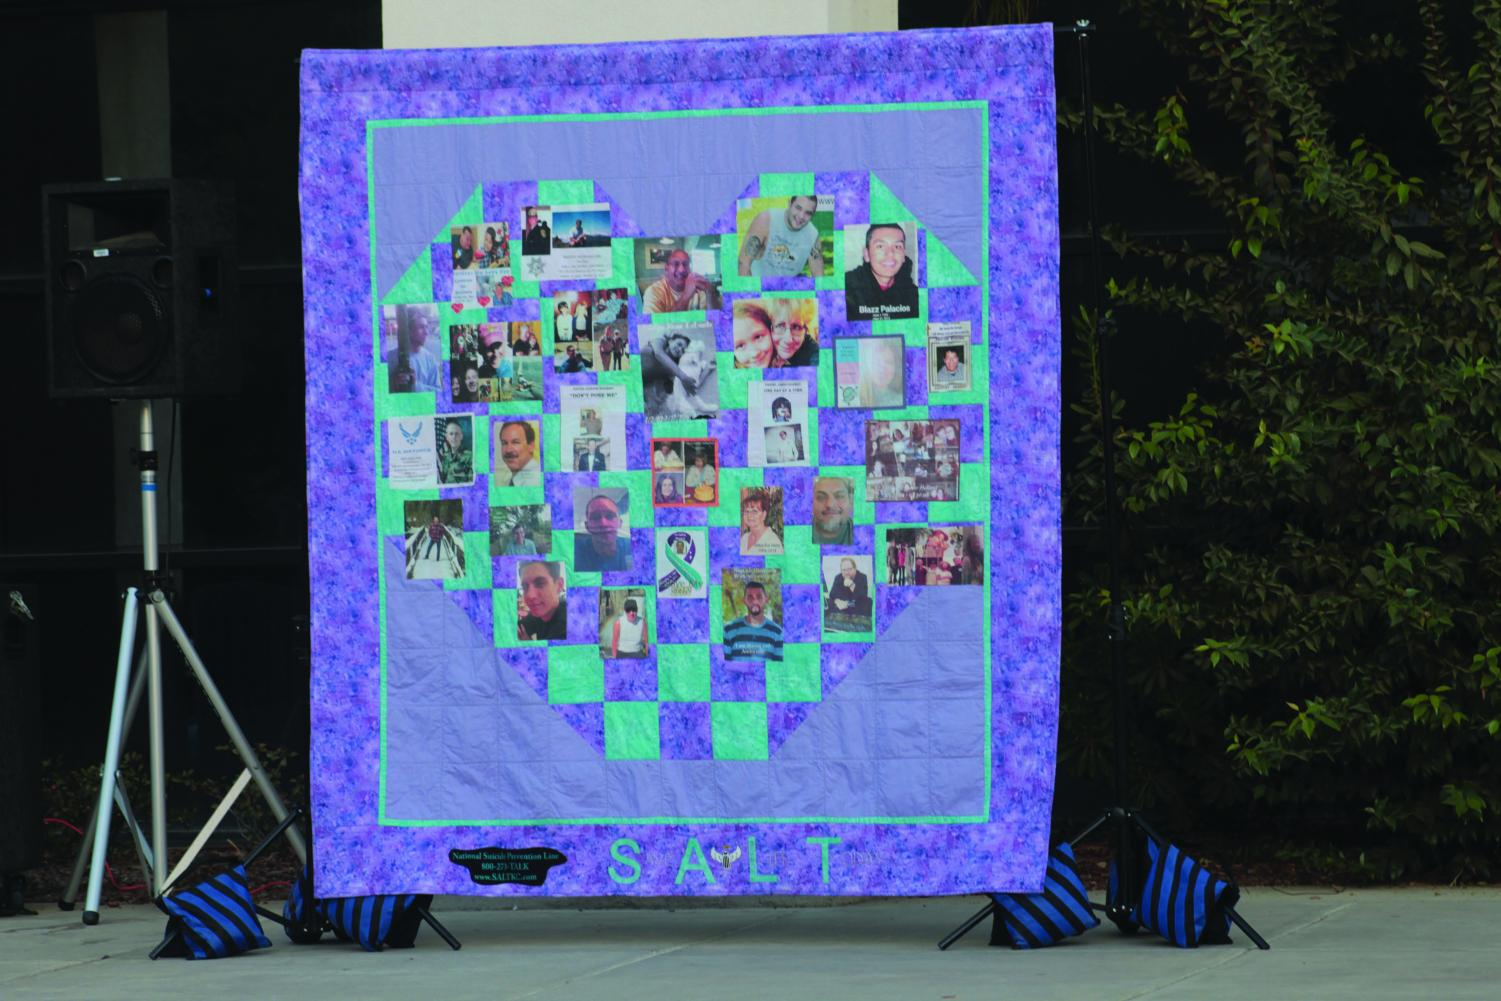 A blanket from the organization S.A.L. T (Save a Life Today)commentating the lives of individuals on October 22, 2019 at the 6th Annual CSUB Candlelight Event.